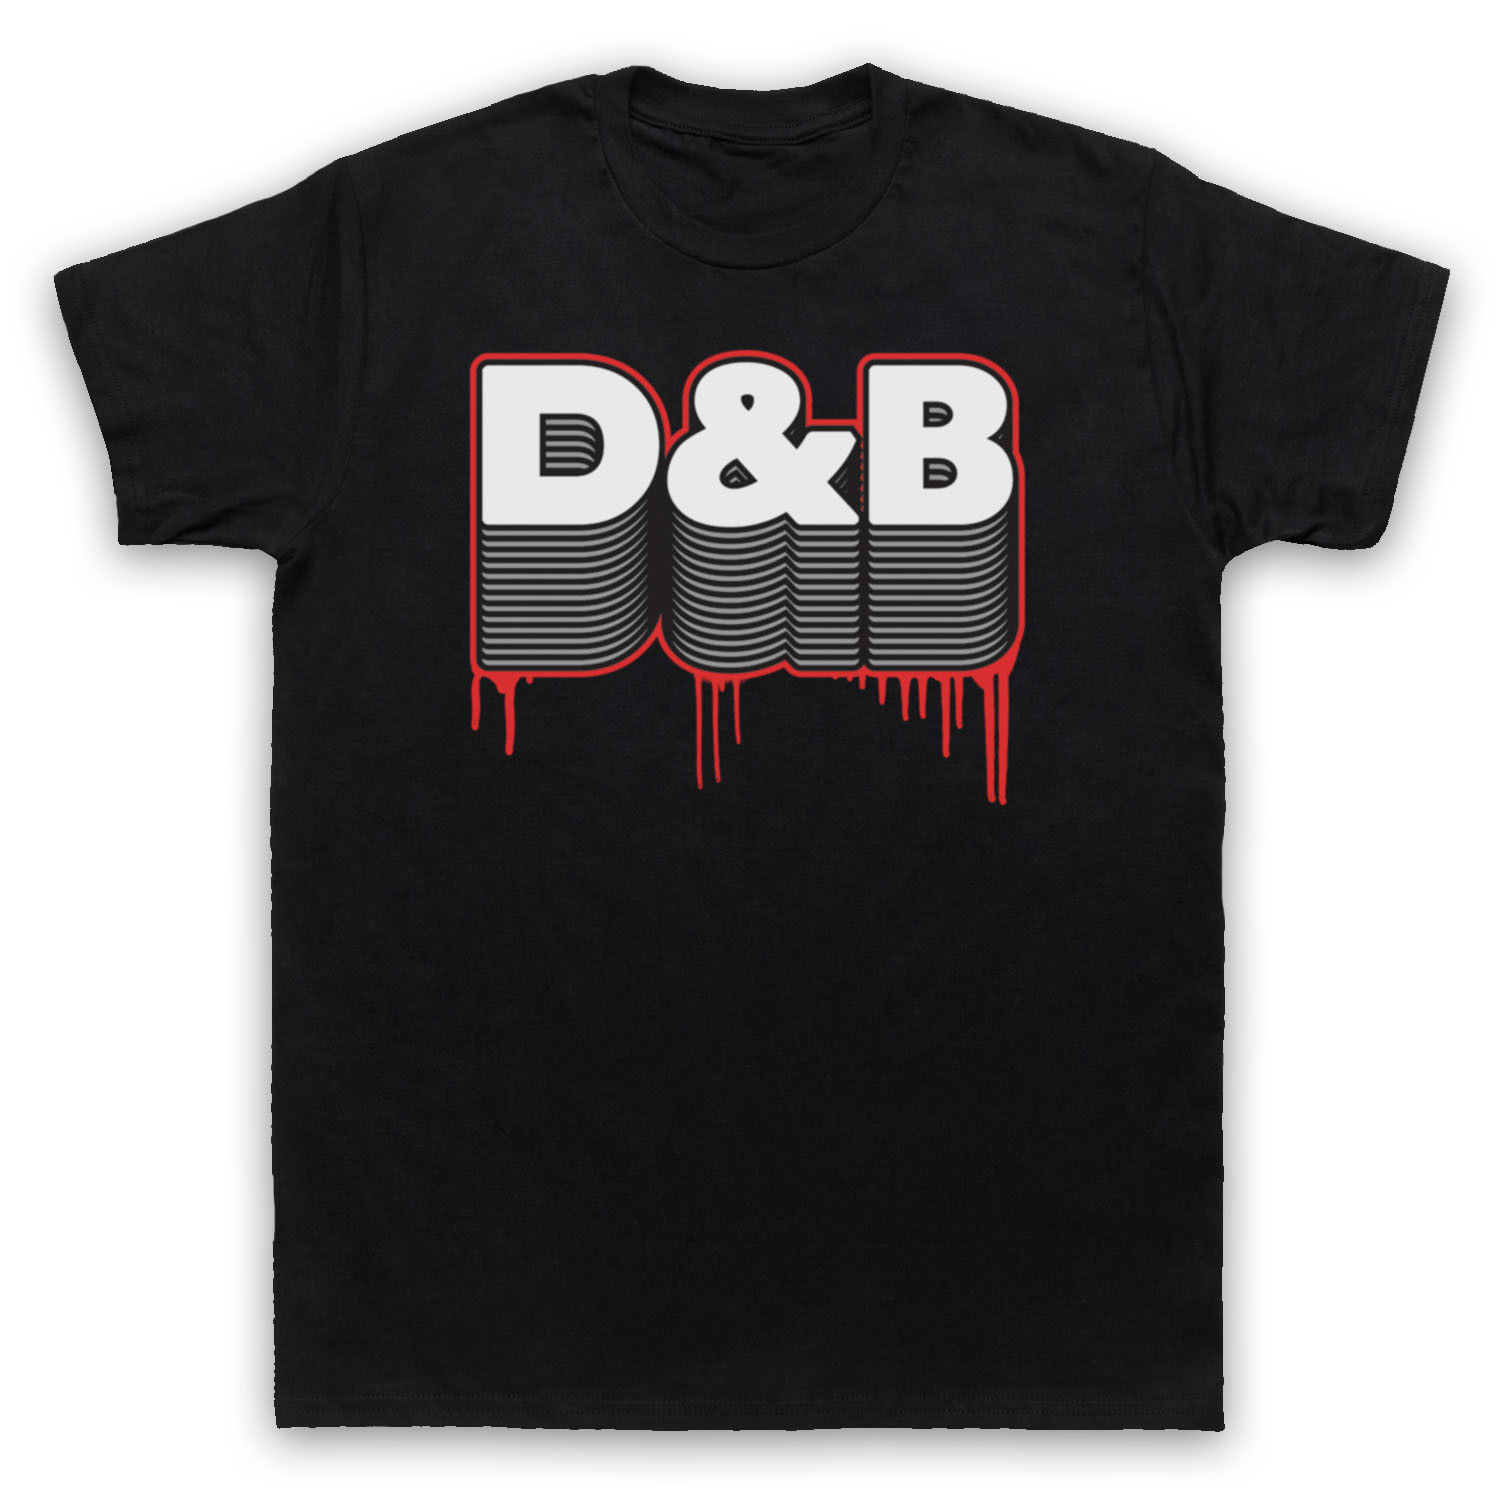 D&B DRUM AND BASS DNB FAN ELECTRONIC BREAKBEAT MUSIC MENS WOMENS KIDS T-SHIRT Fashion Summer Paried T Shirt Top Tee